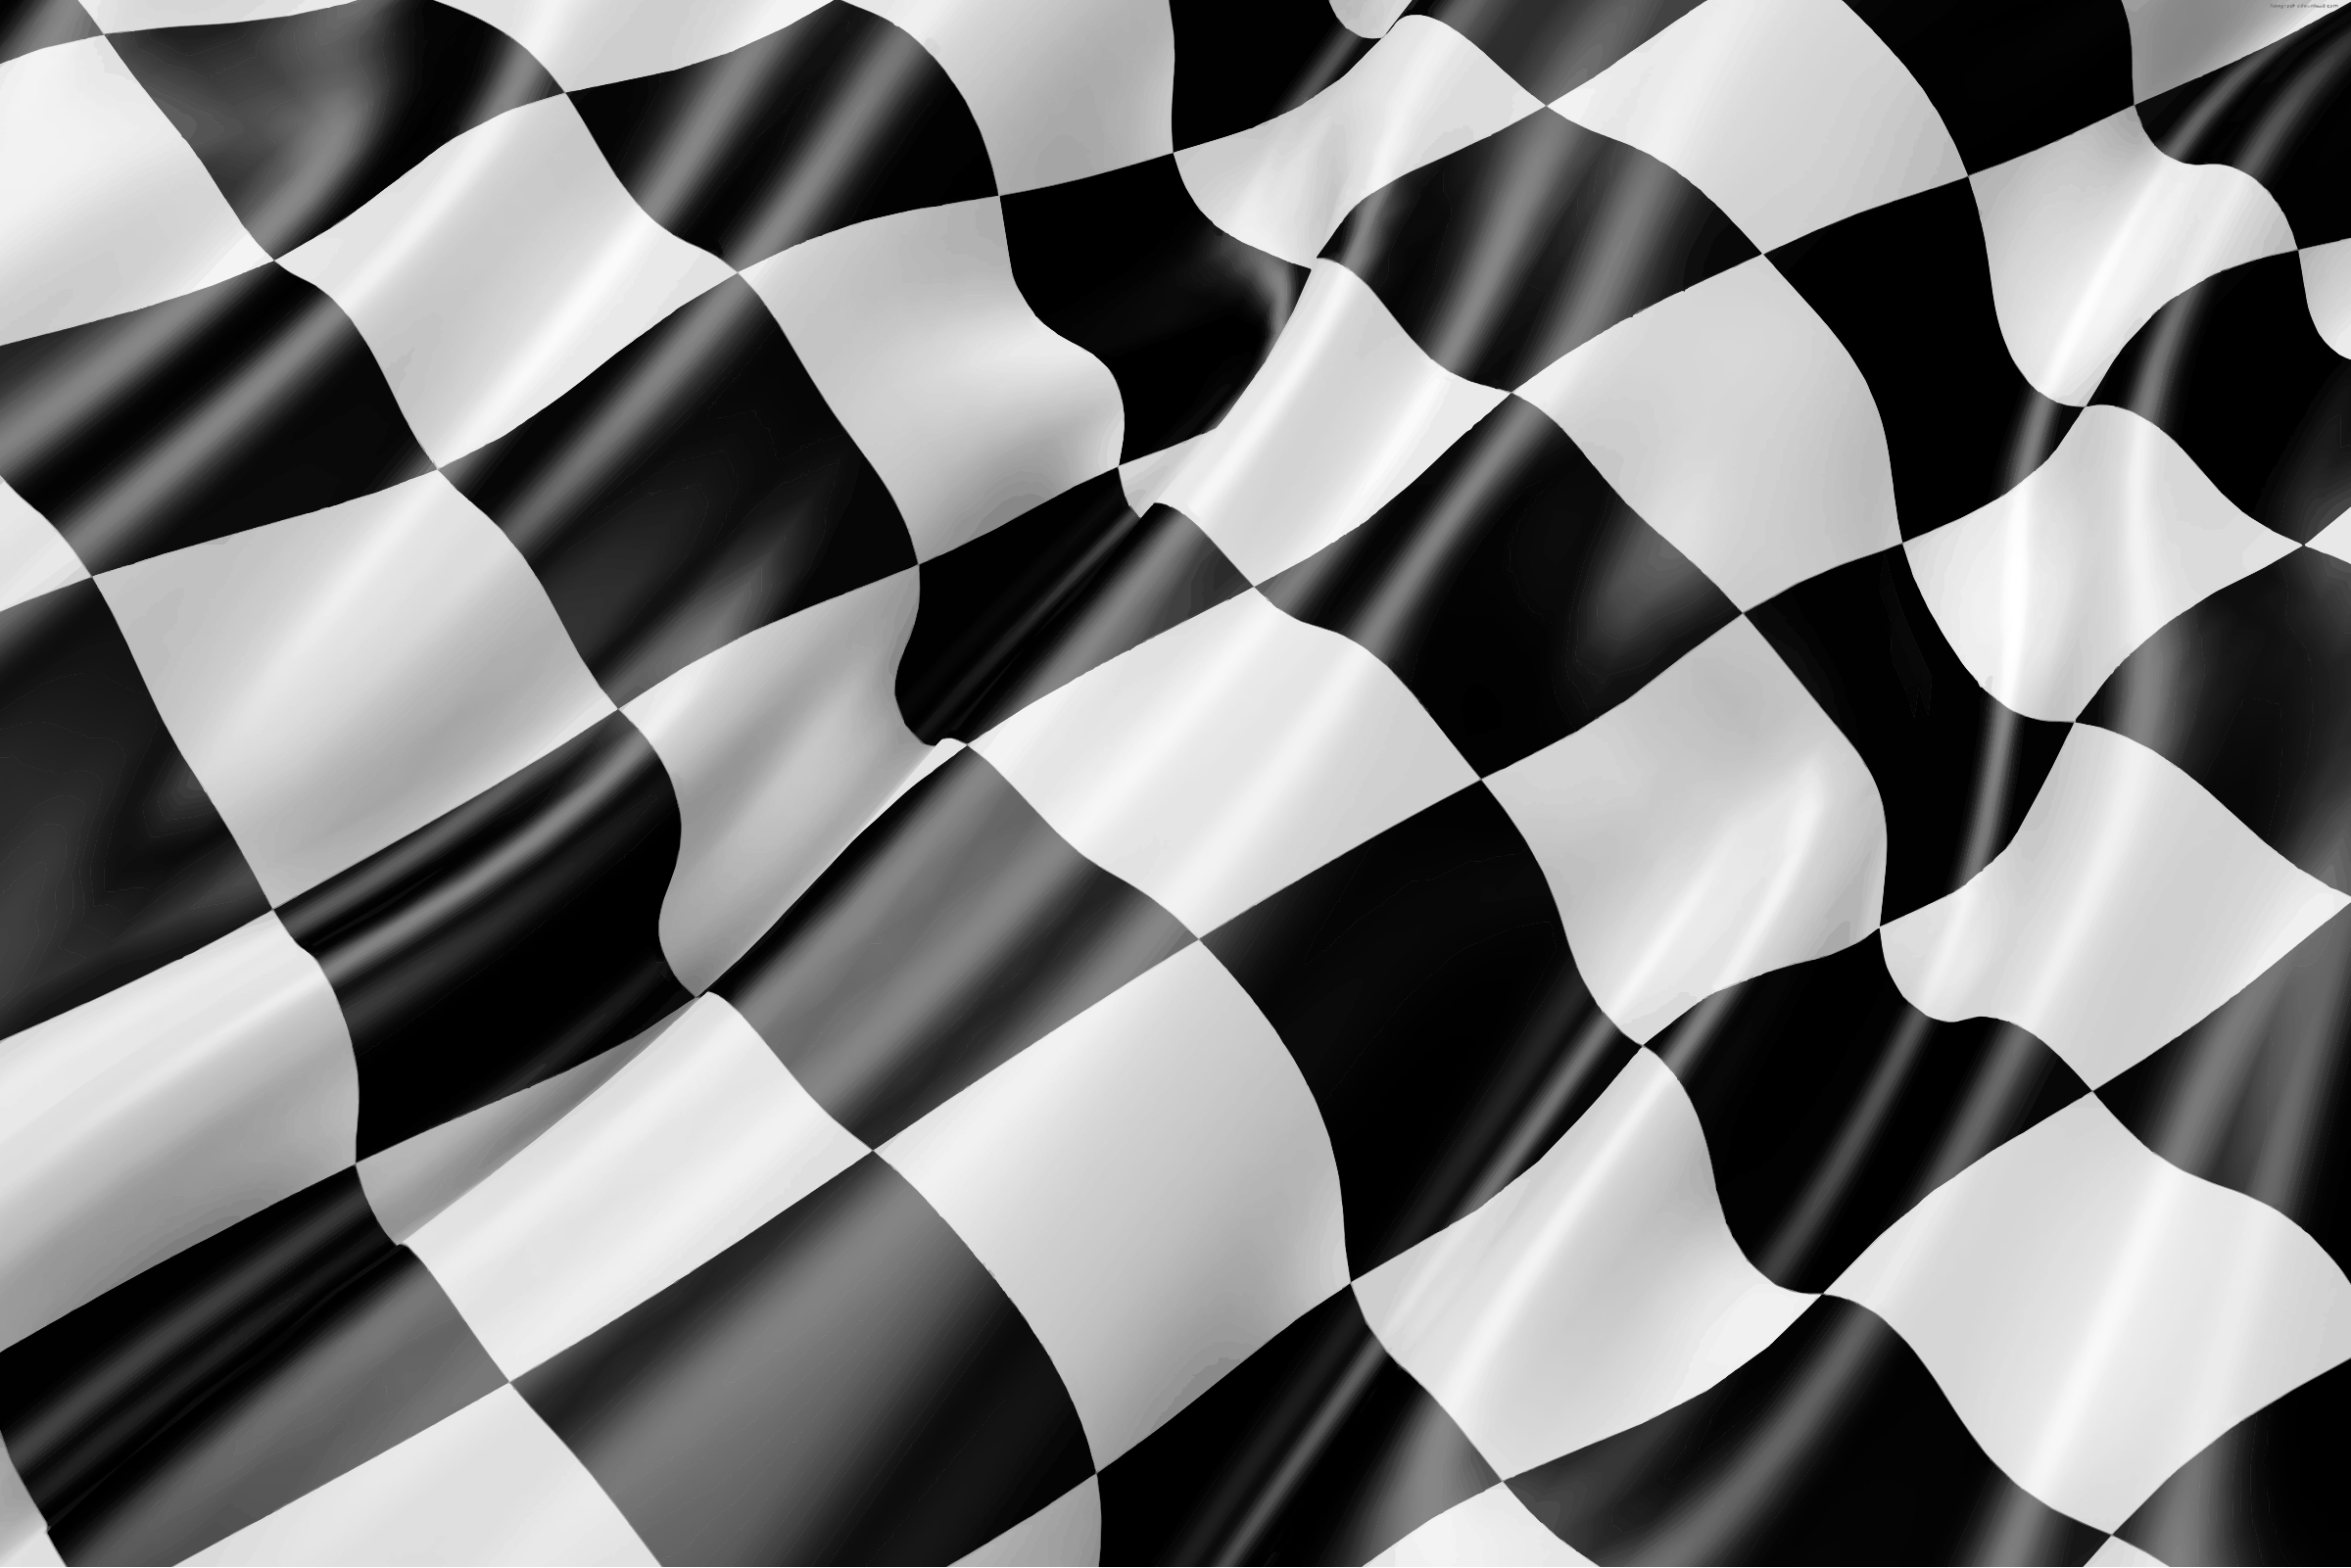 Chequered flag by Firkin